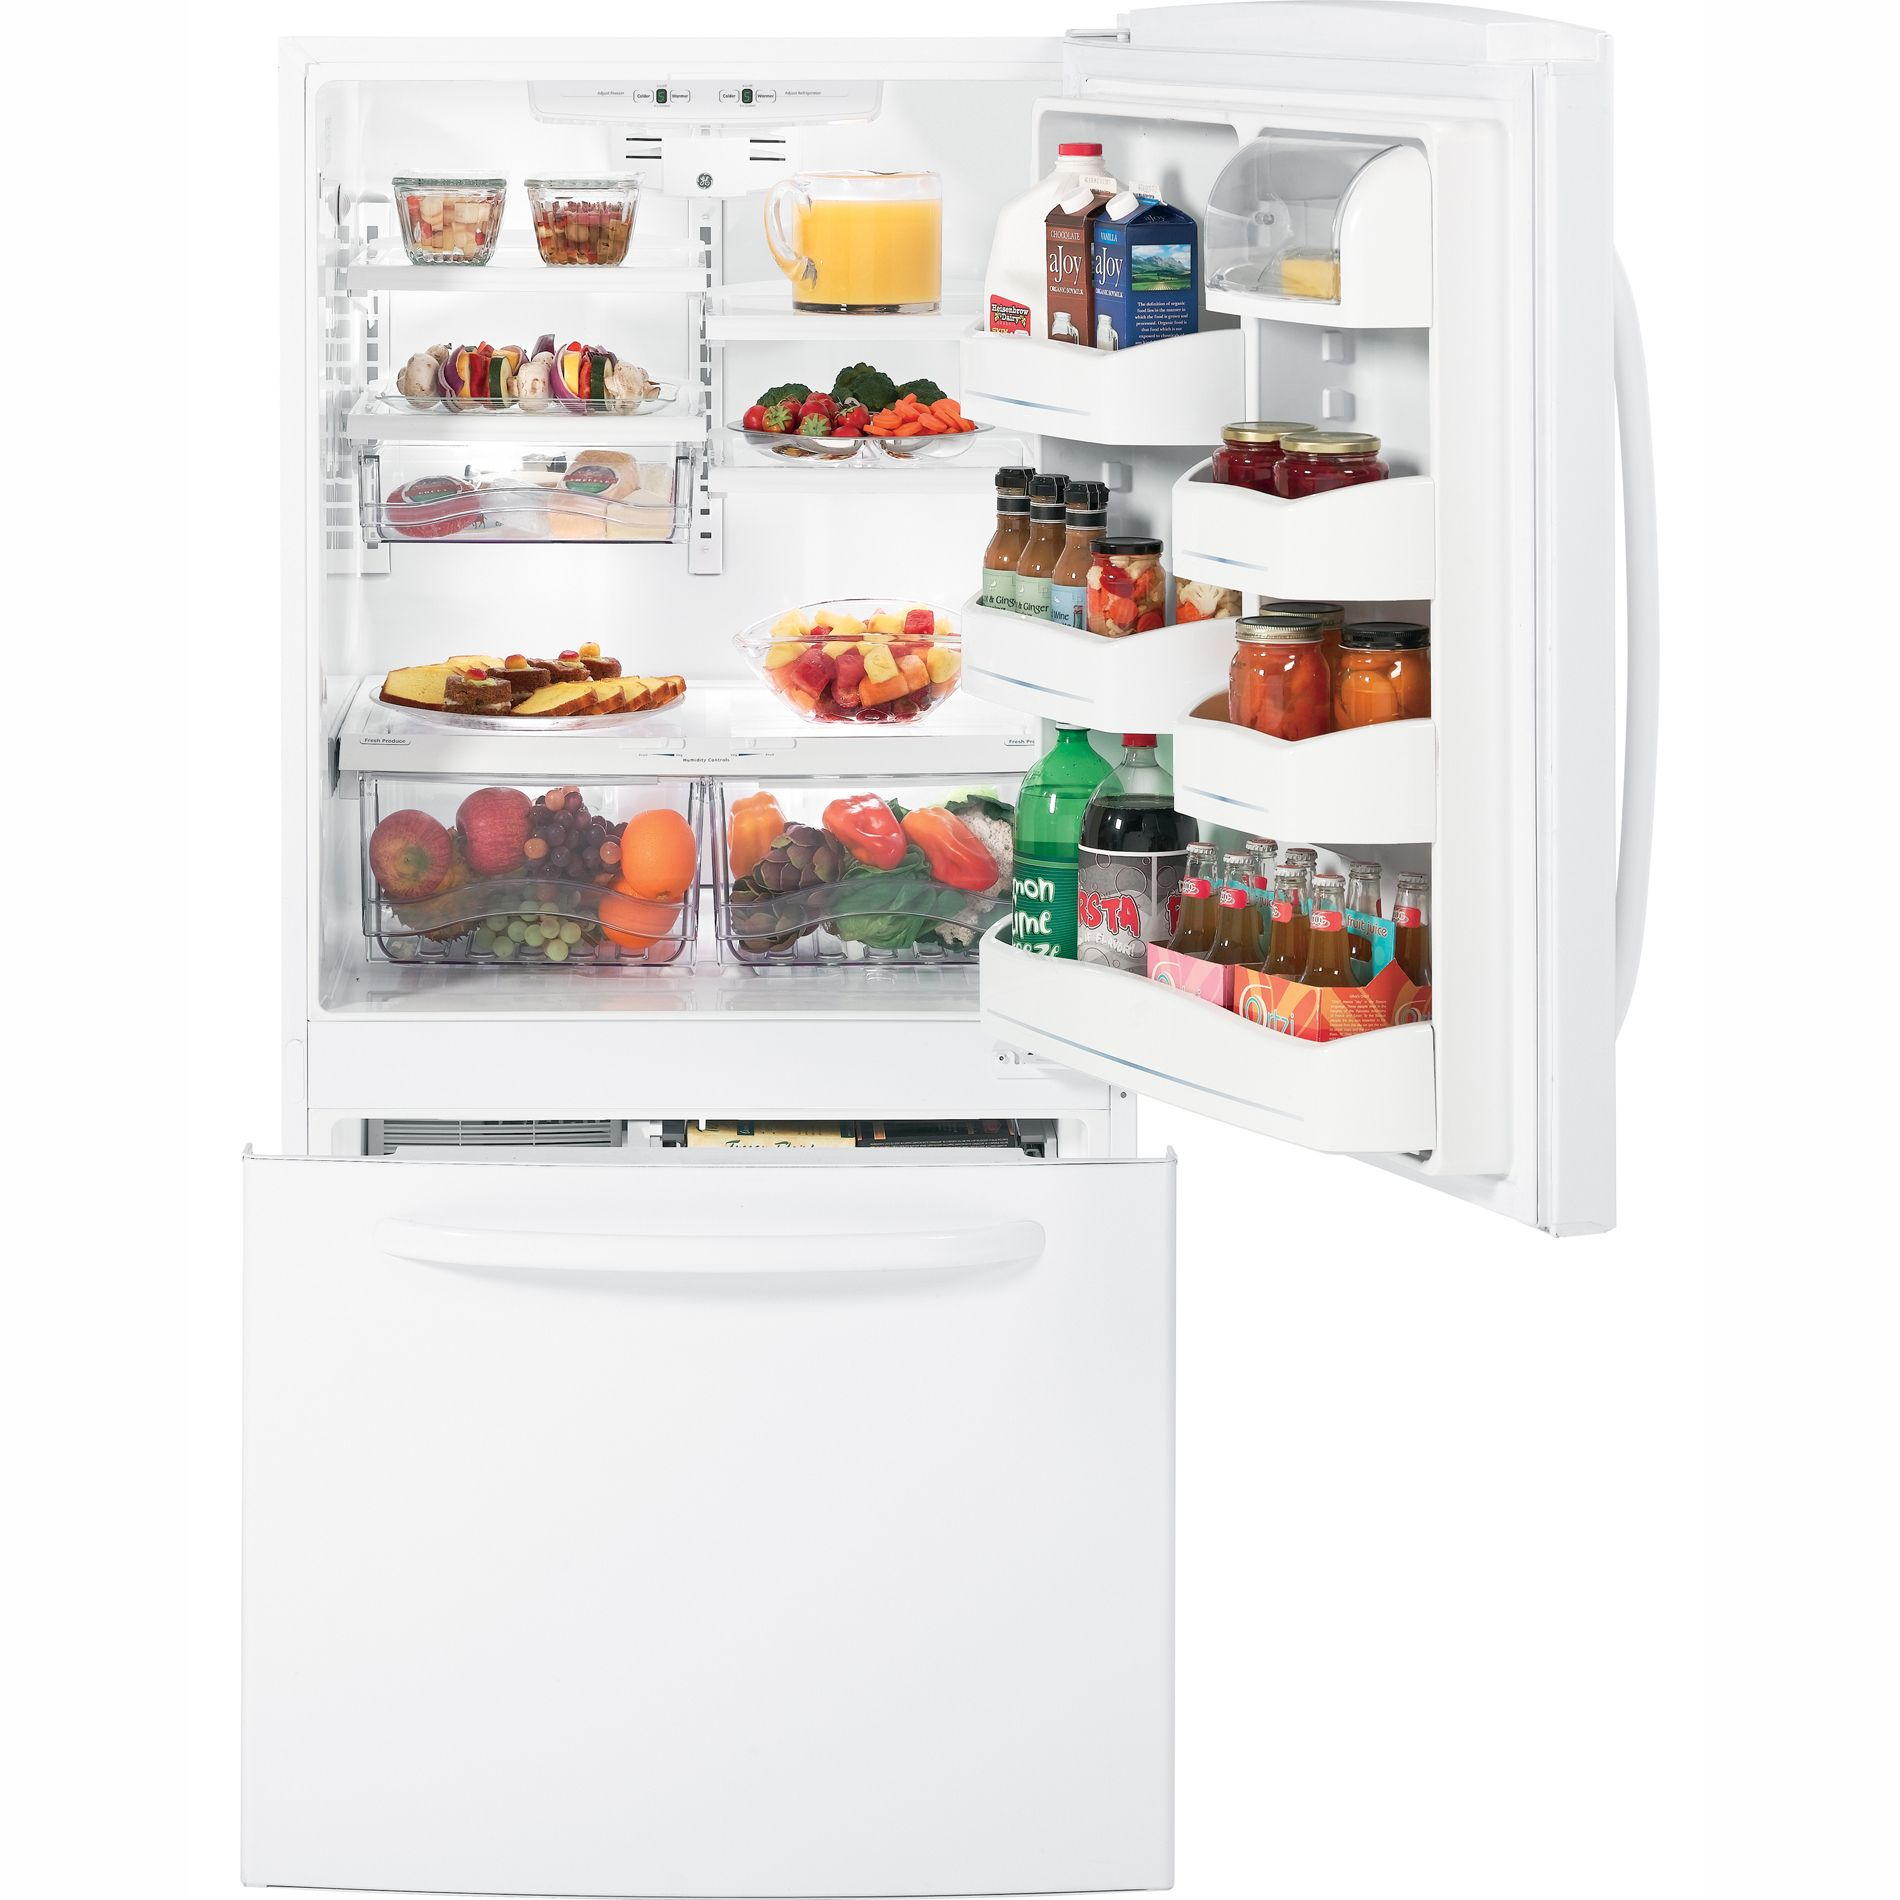 GE 22.7 cu. ft. Bottom Freezer Refrigerator (GDSC3KCY)